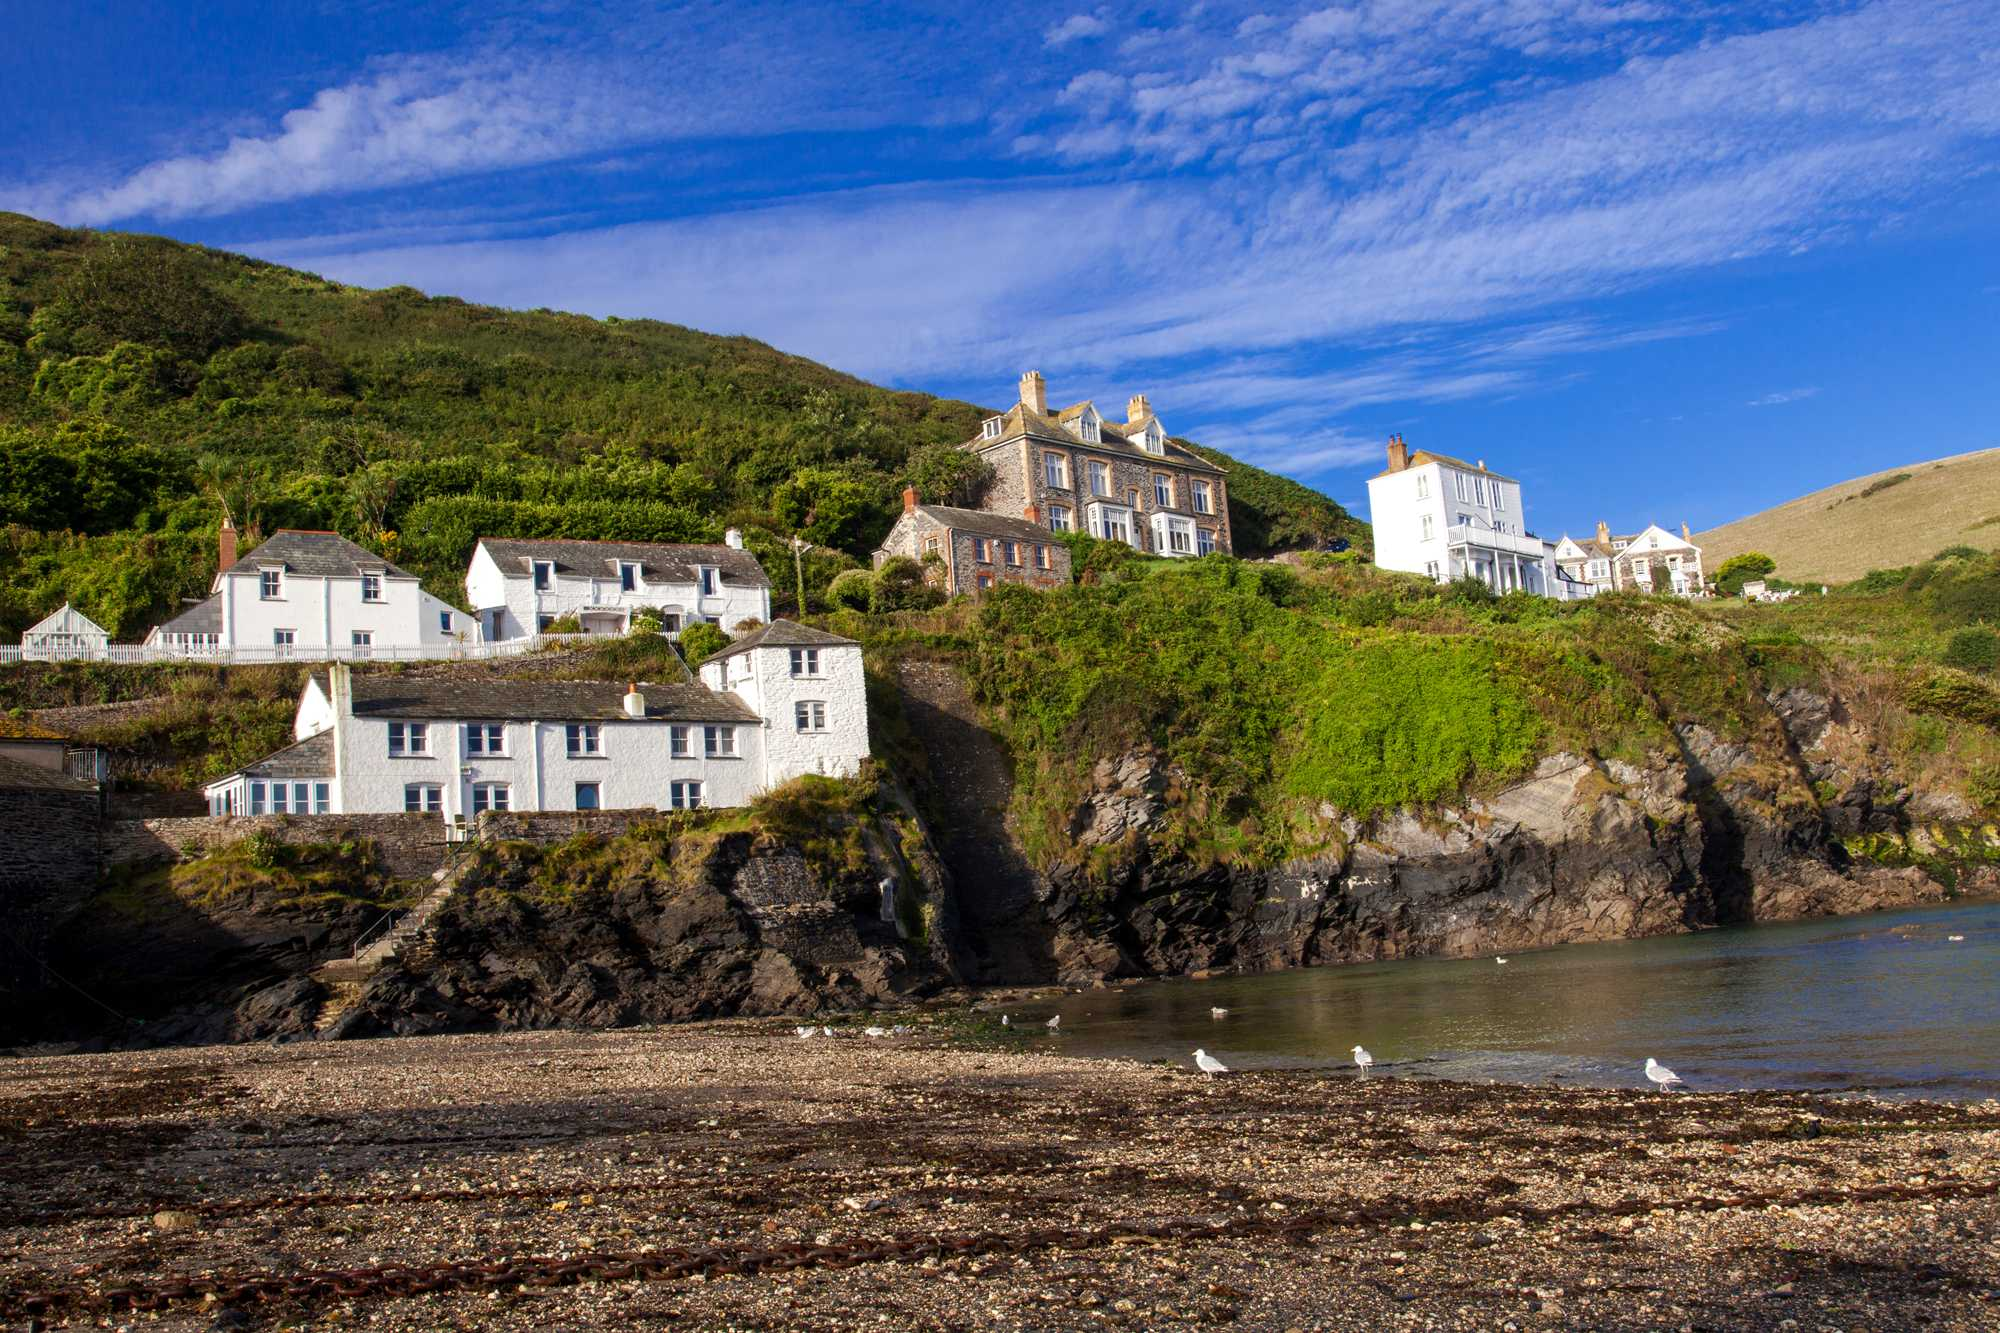 The view from the harbour in the picturesque fishing village of Port Isaac